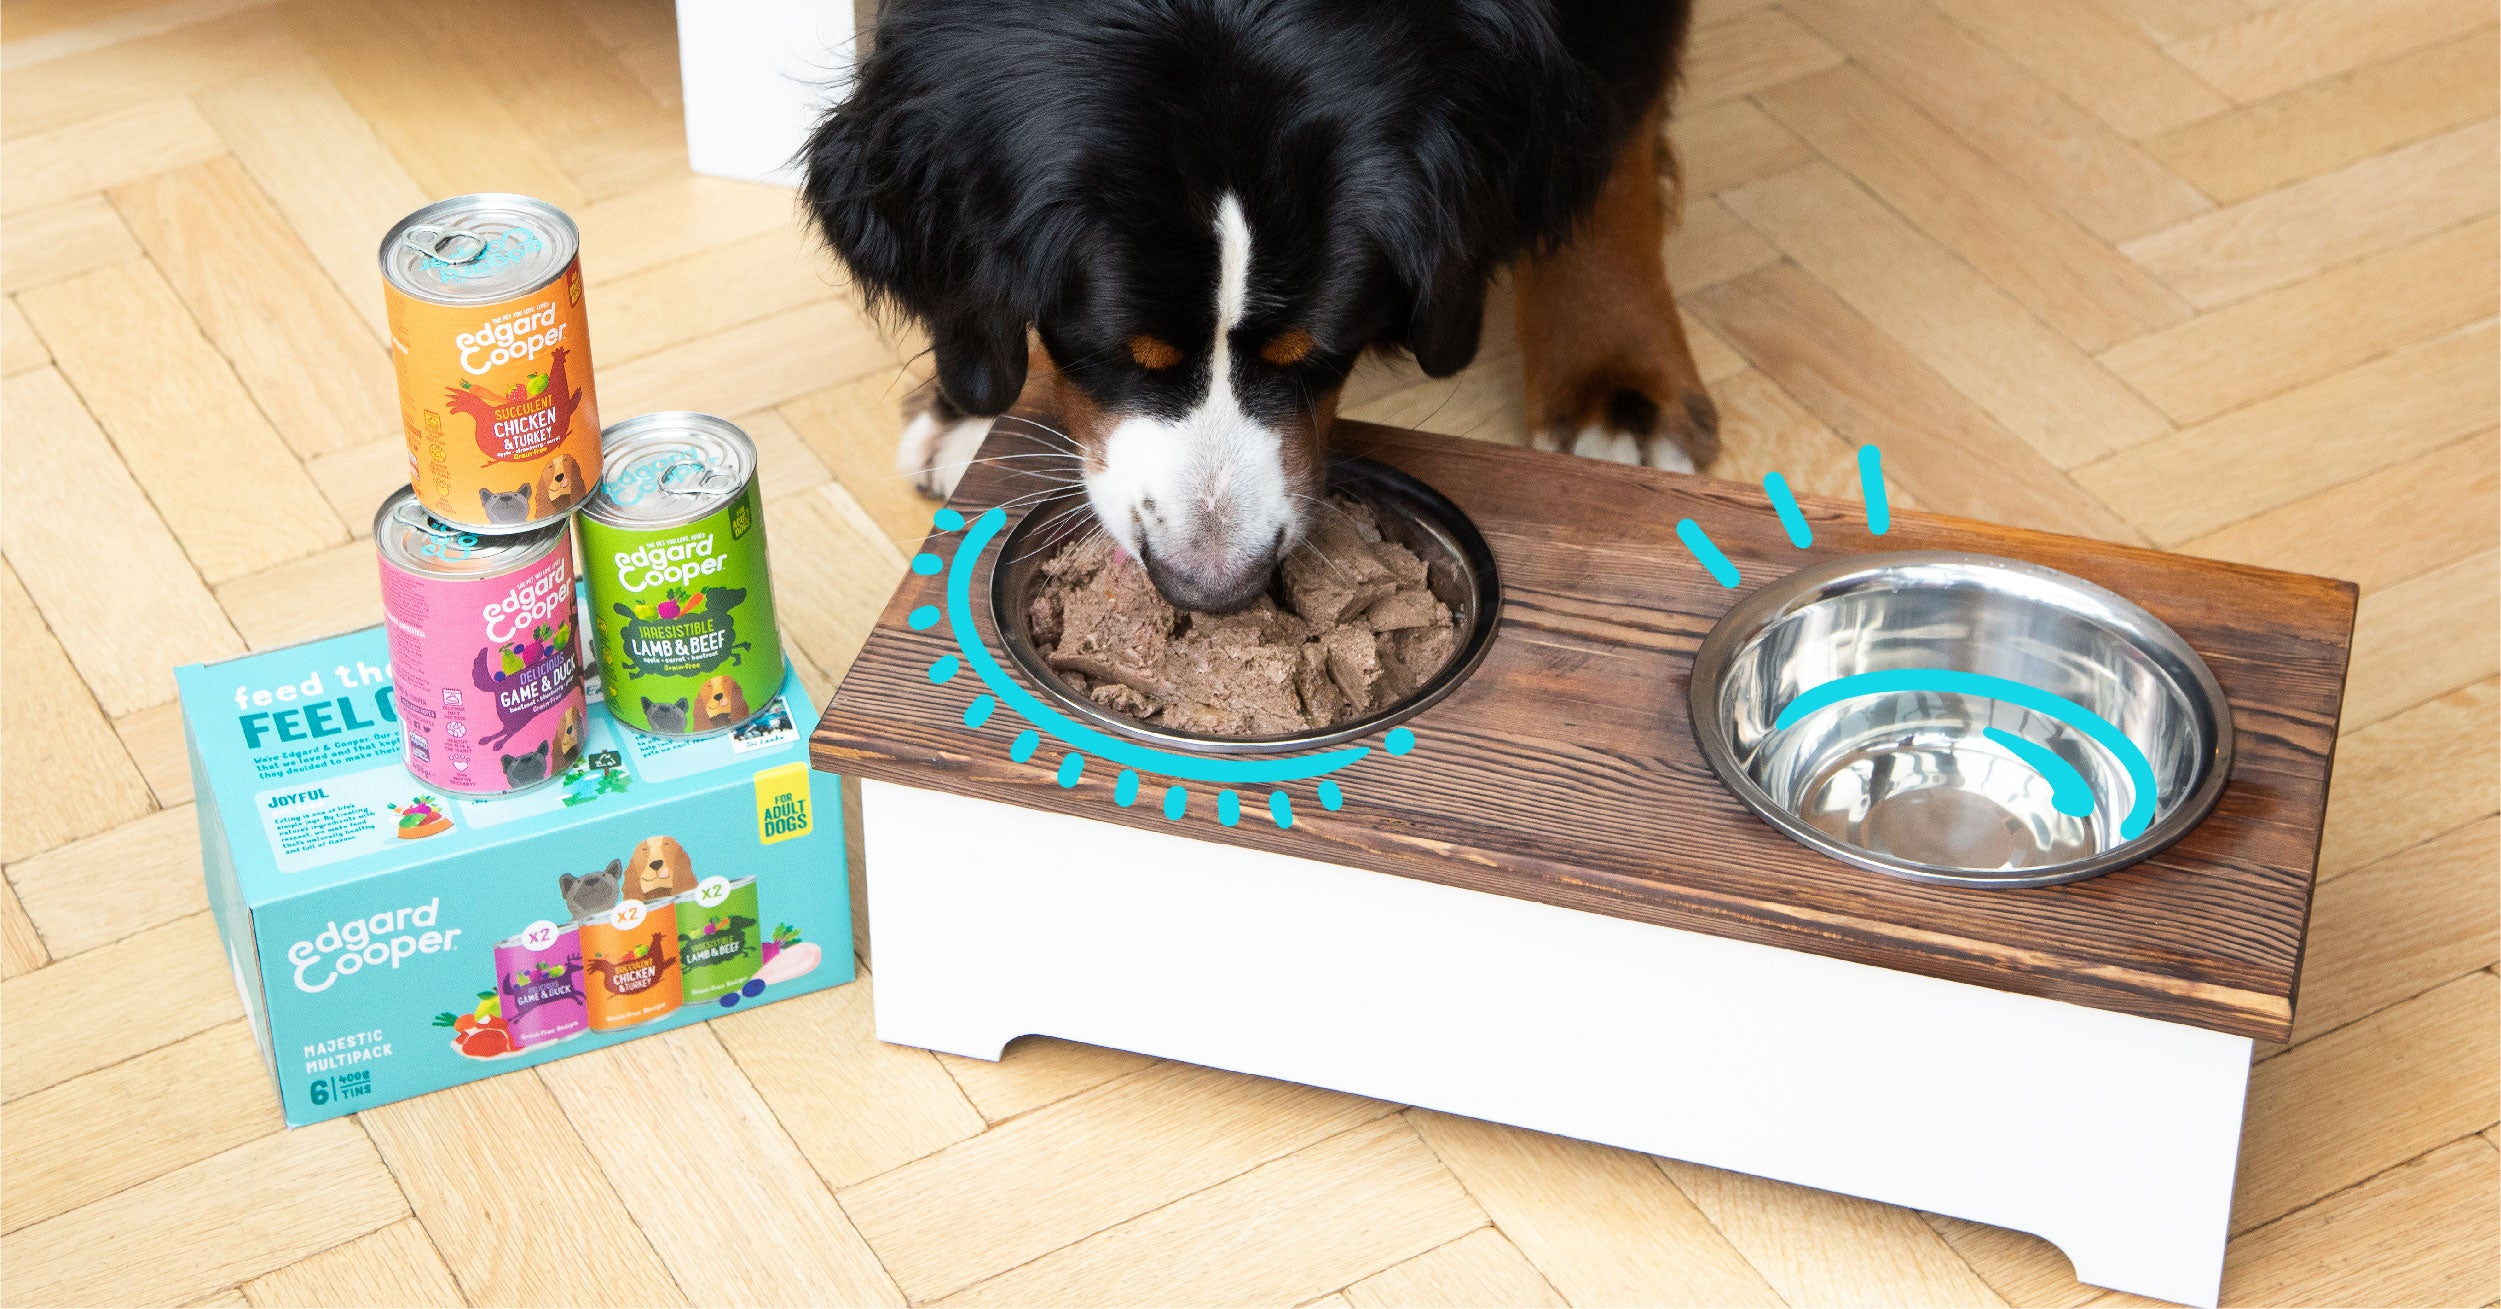 Photo of dog eating Edgard & Cooper wet food out of bowl.